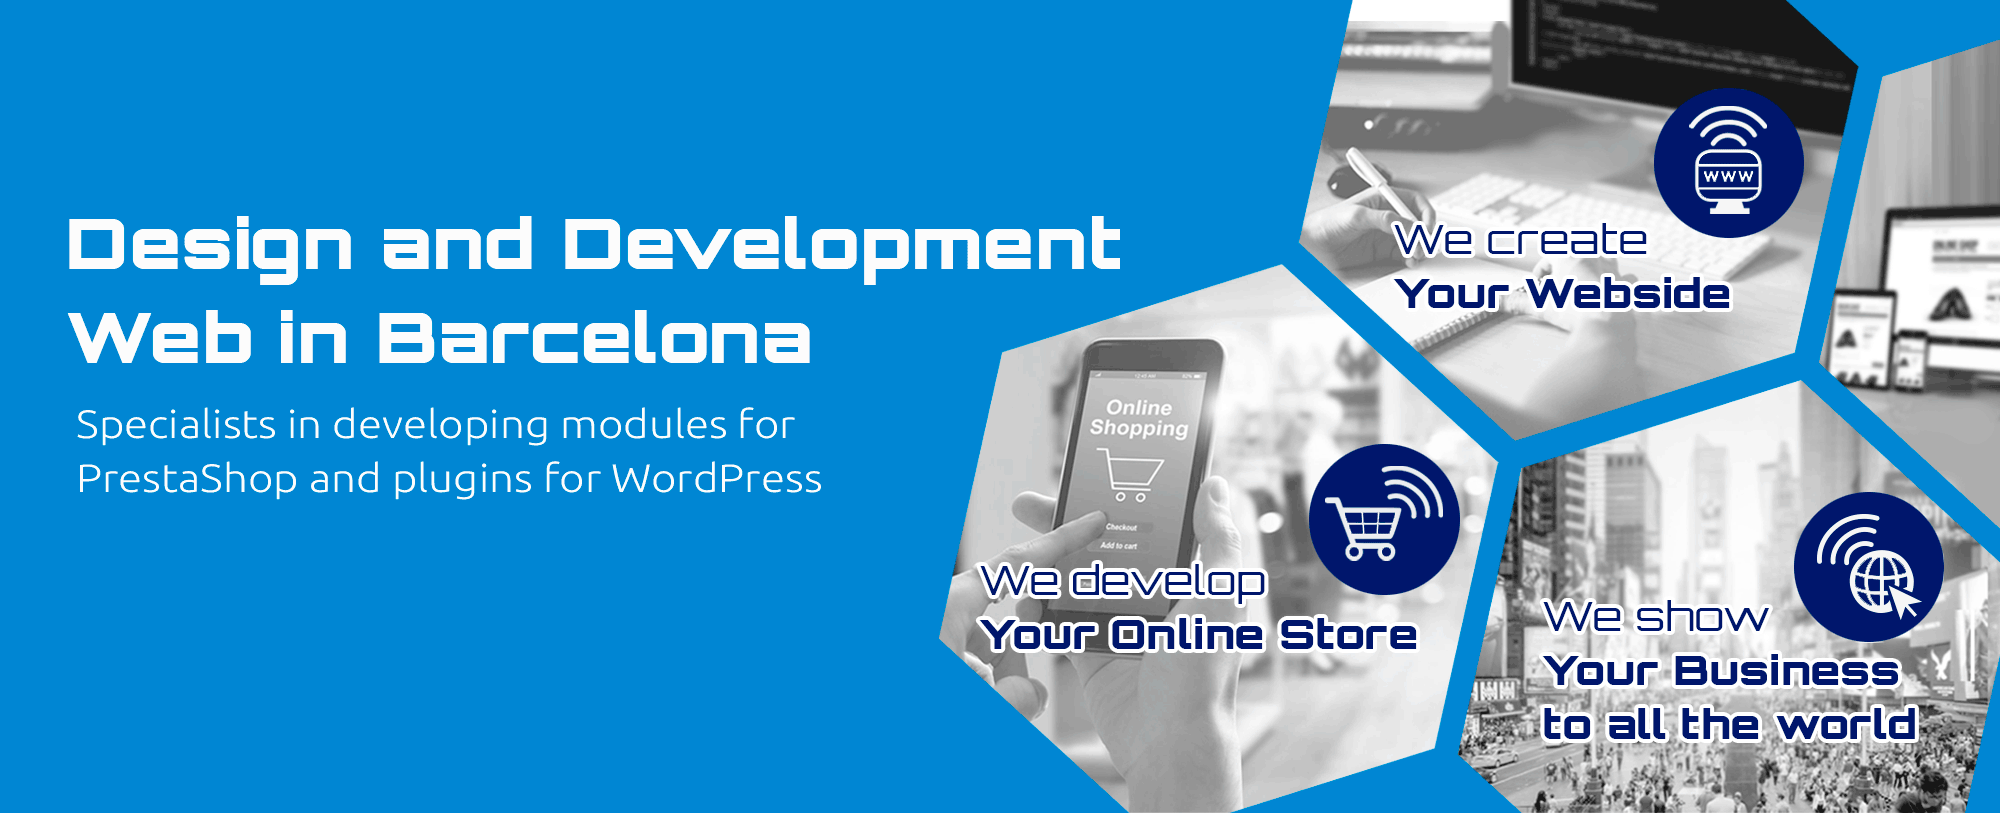 We develop your online store. We create your website. We show your business to the whole world